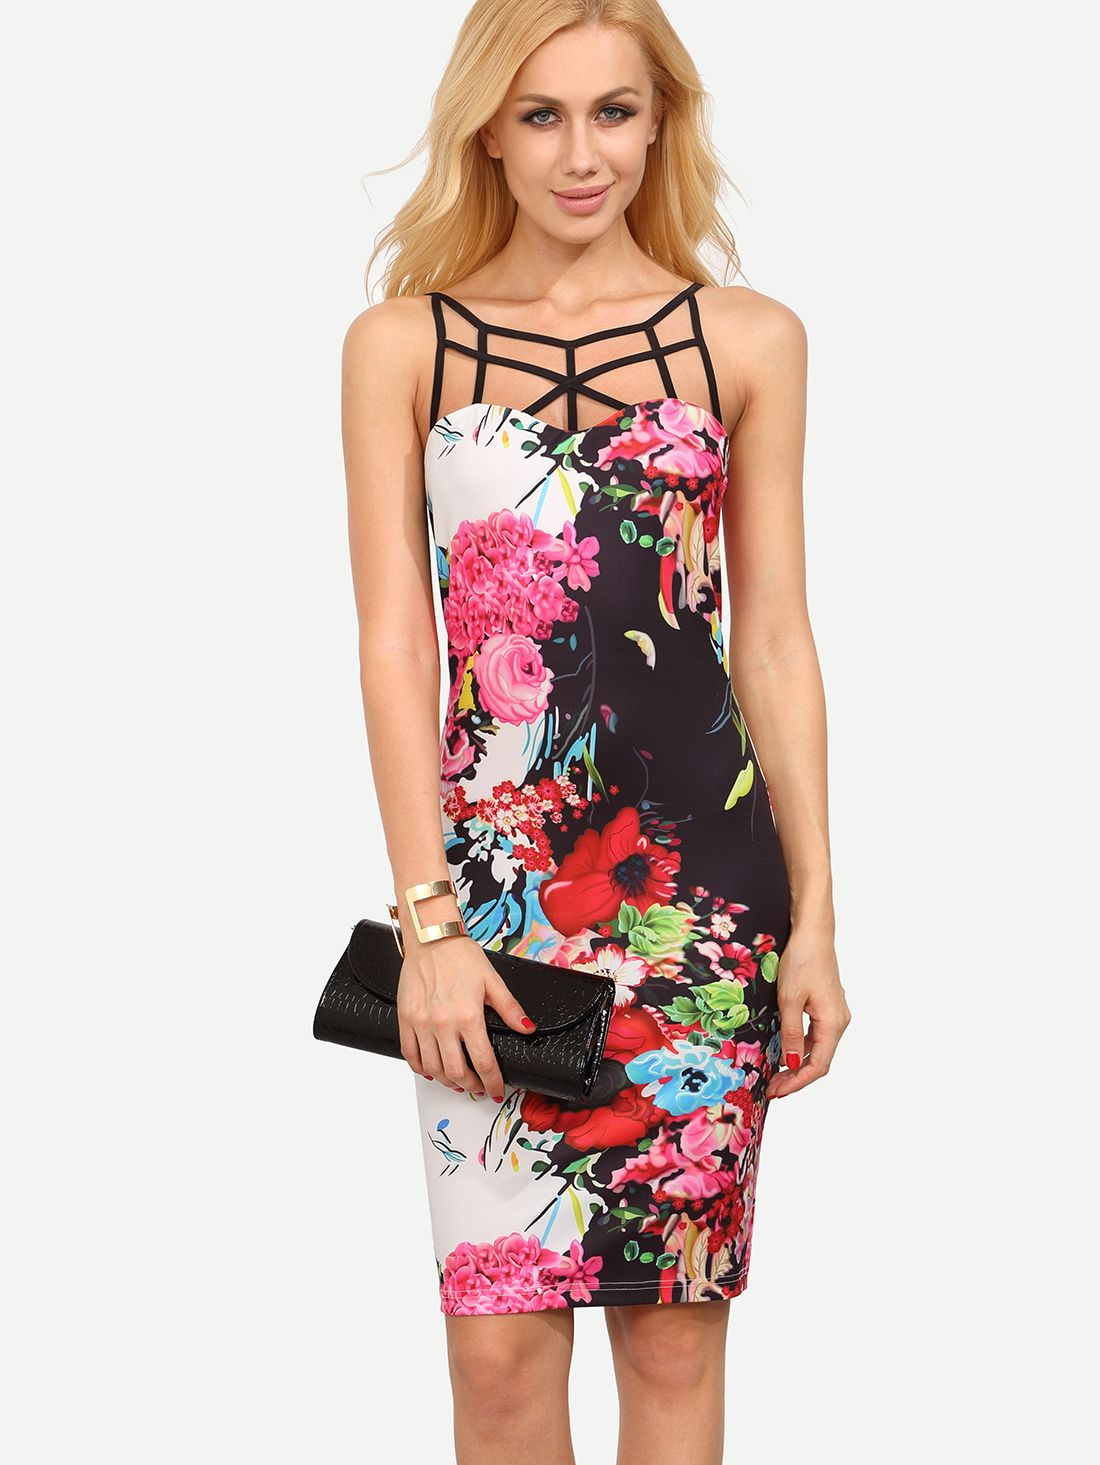 Pink cut out dress  Shop Floral Print Caged Neck Bodycon Dress online SheIn offers